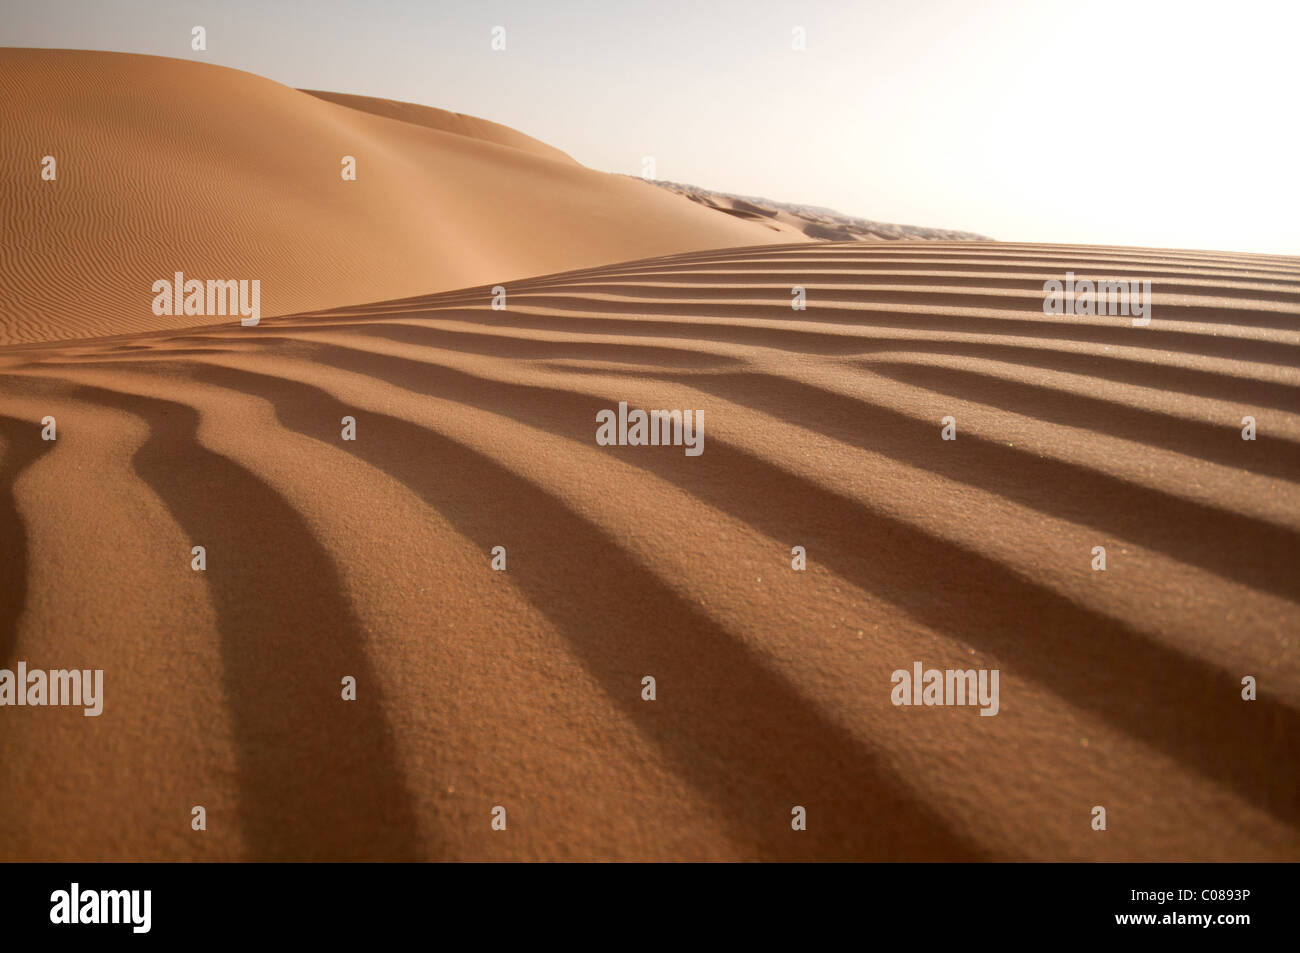 Perfect Sand dune formation - Stock Image